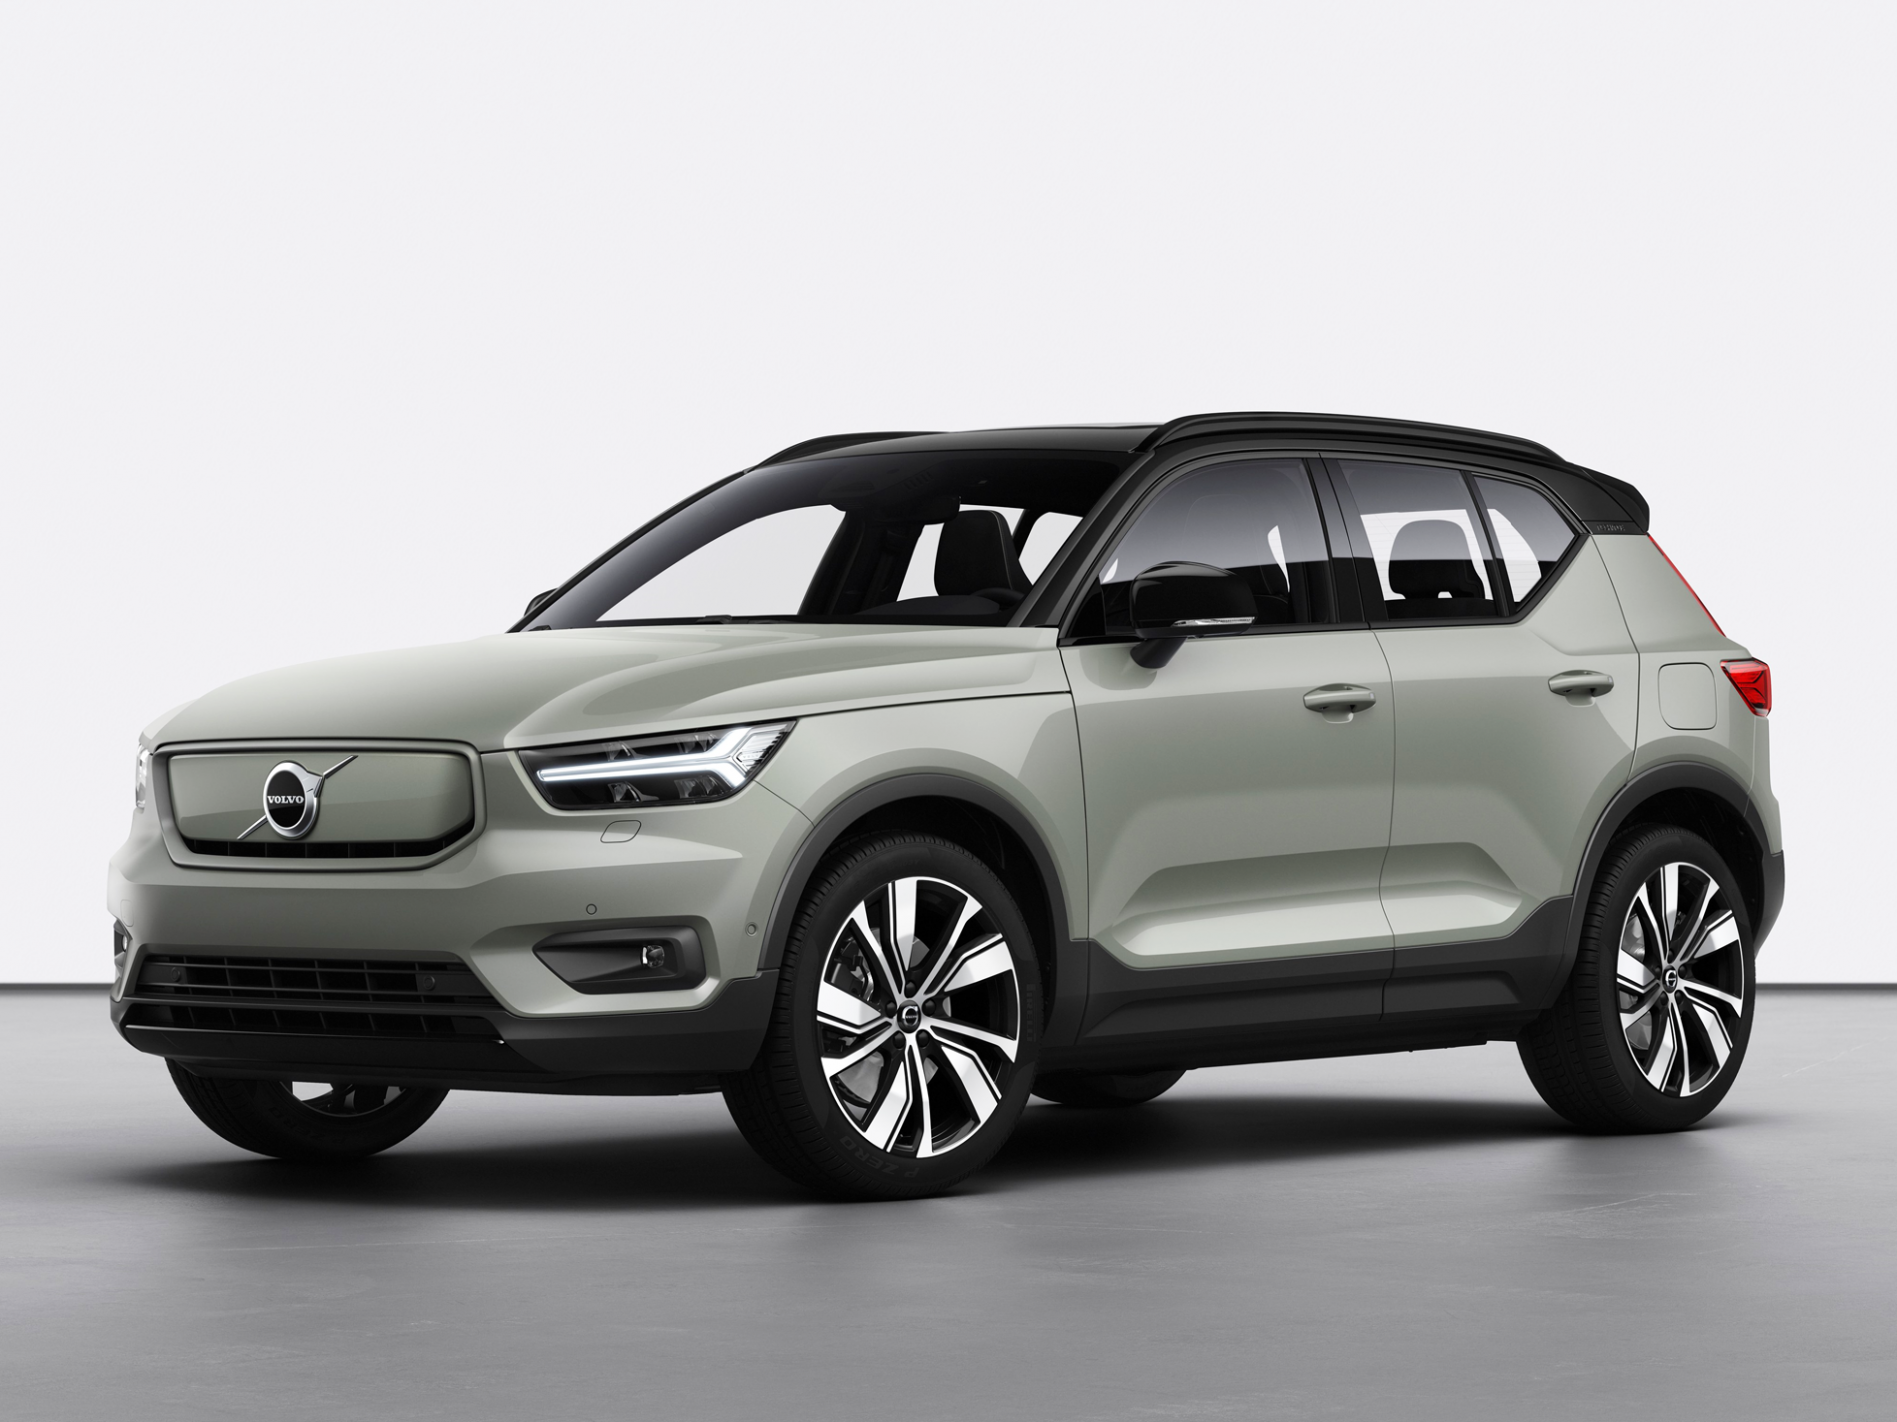 Volvo's First Electric Car Kicks Off a Plan to Cut Emissions | WIRED